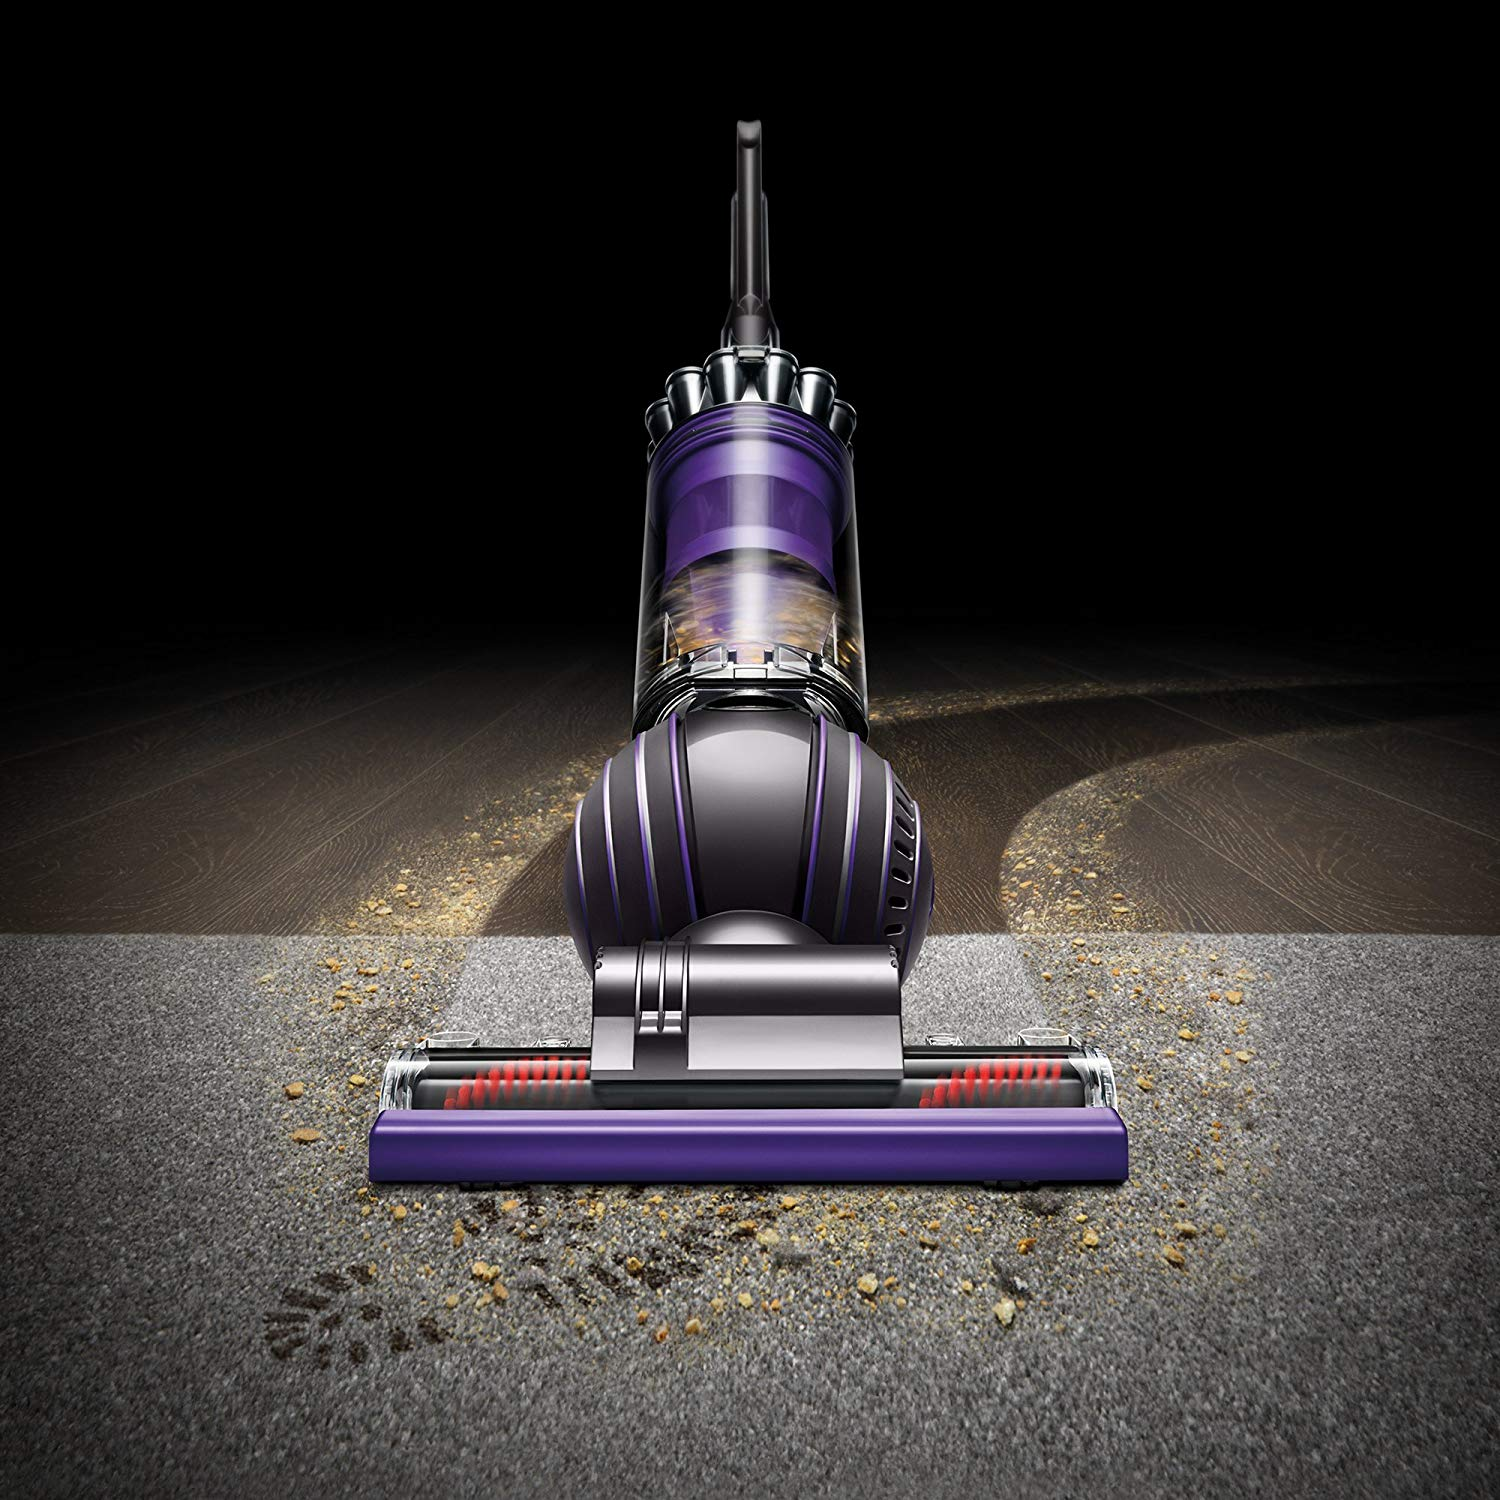 Review dyson vacuums вентилятор dyson air multiplier